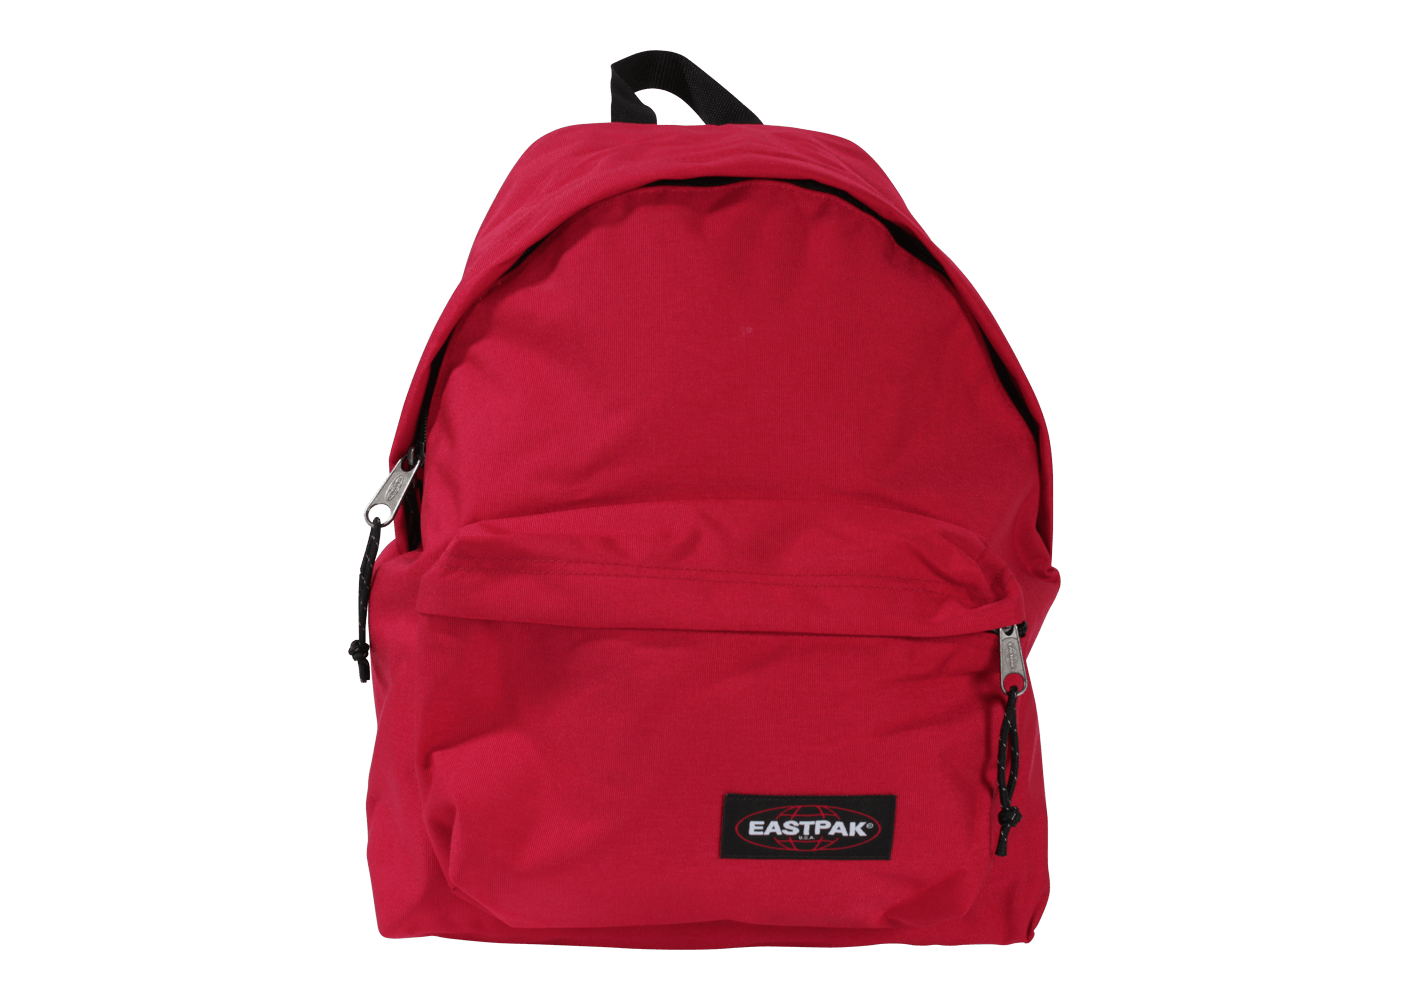 eastpak sac dos padded pak 39 r rouge sacs sacoches chausport. Black Bedroom Furniture Sets. Home Design Ideas